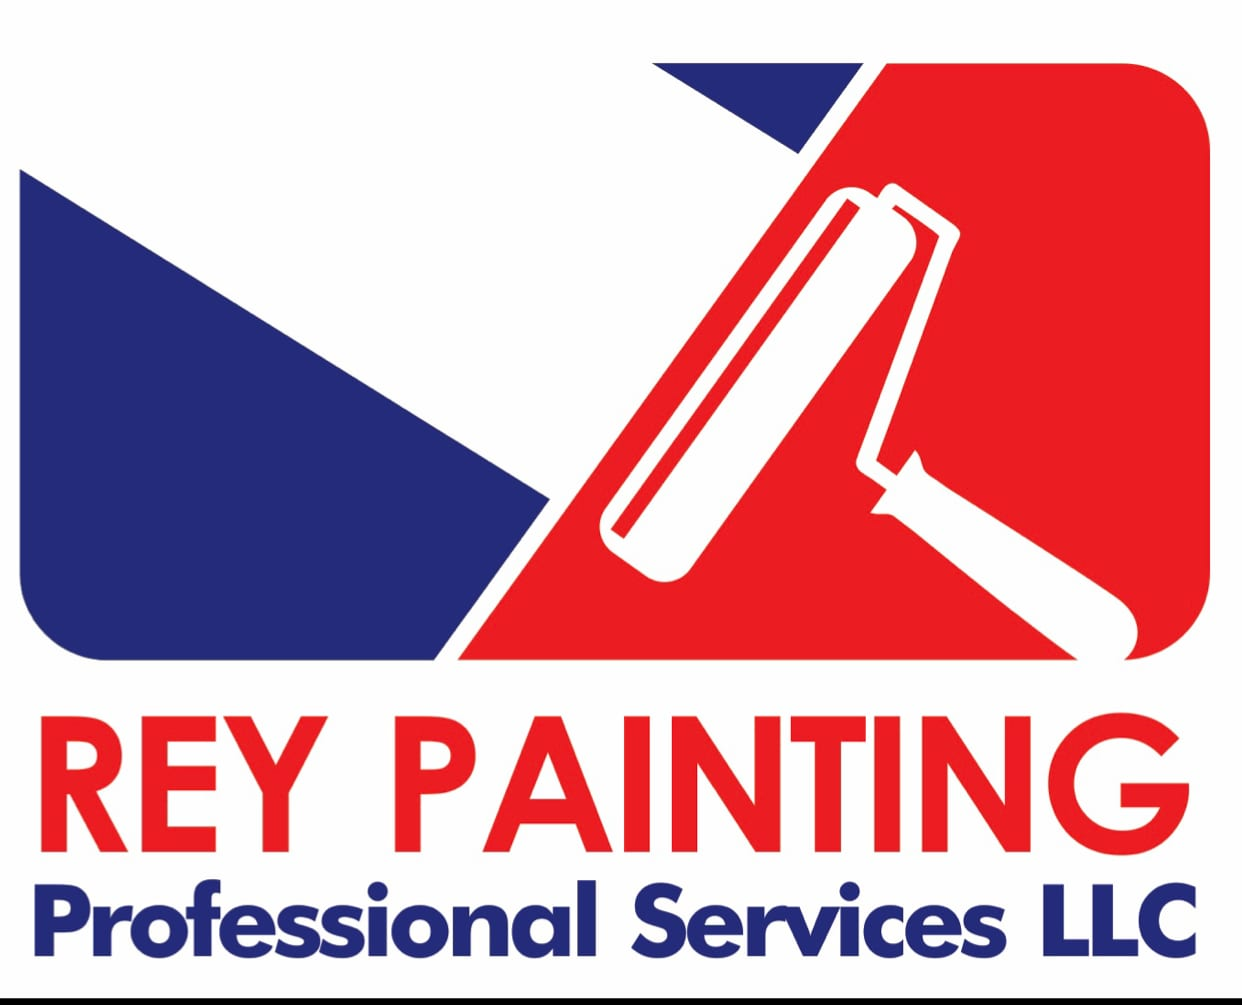 Rey Painting Professional Services LLc